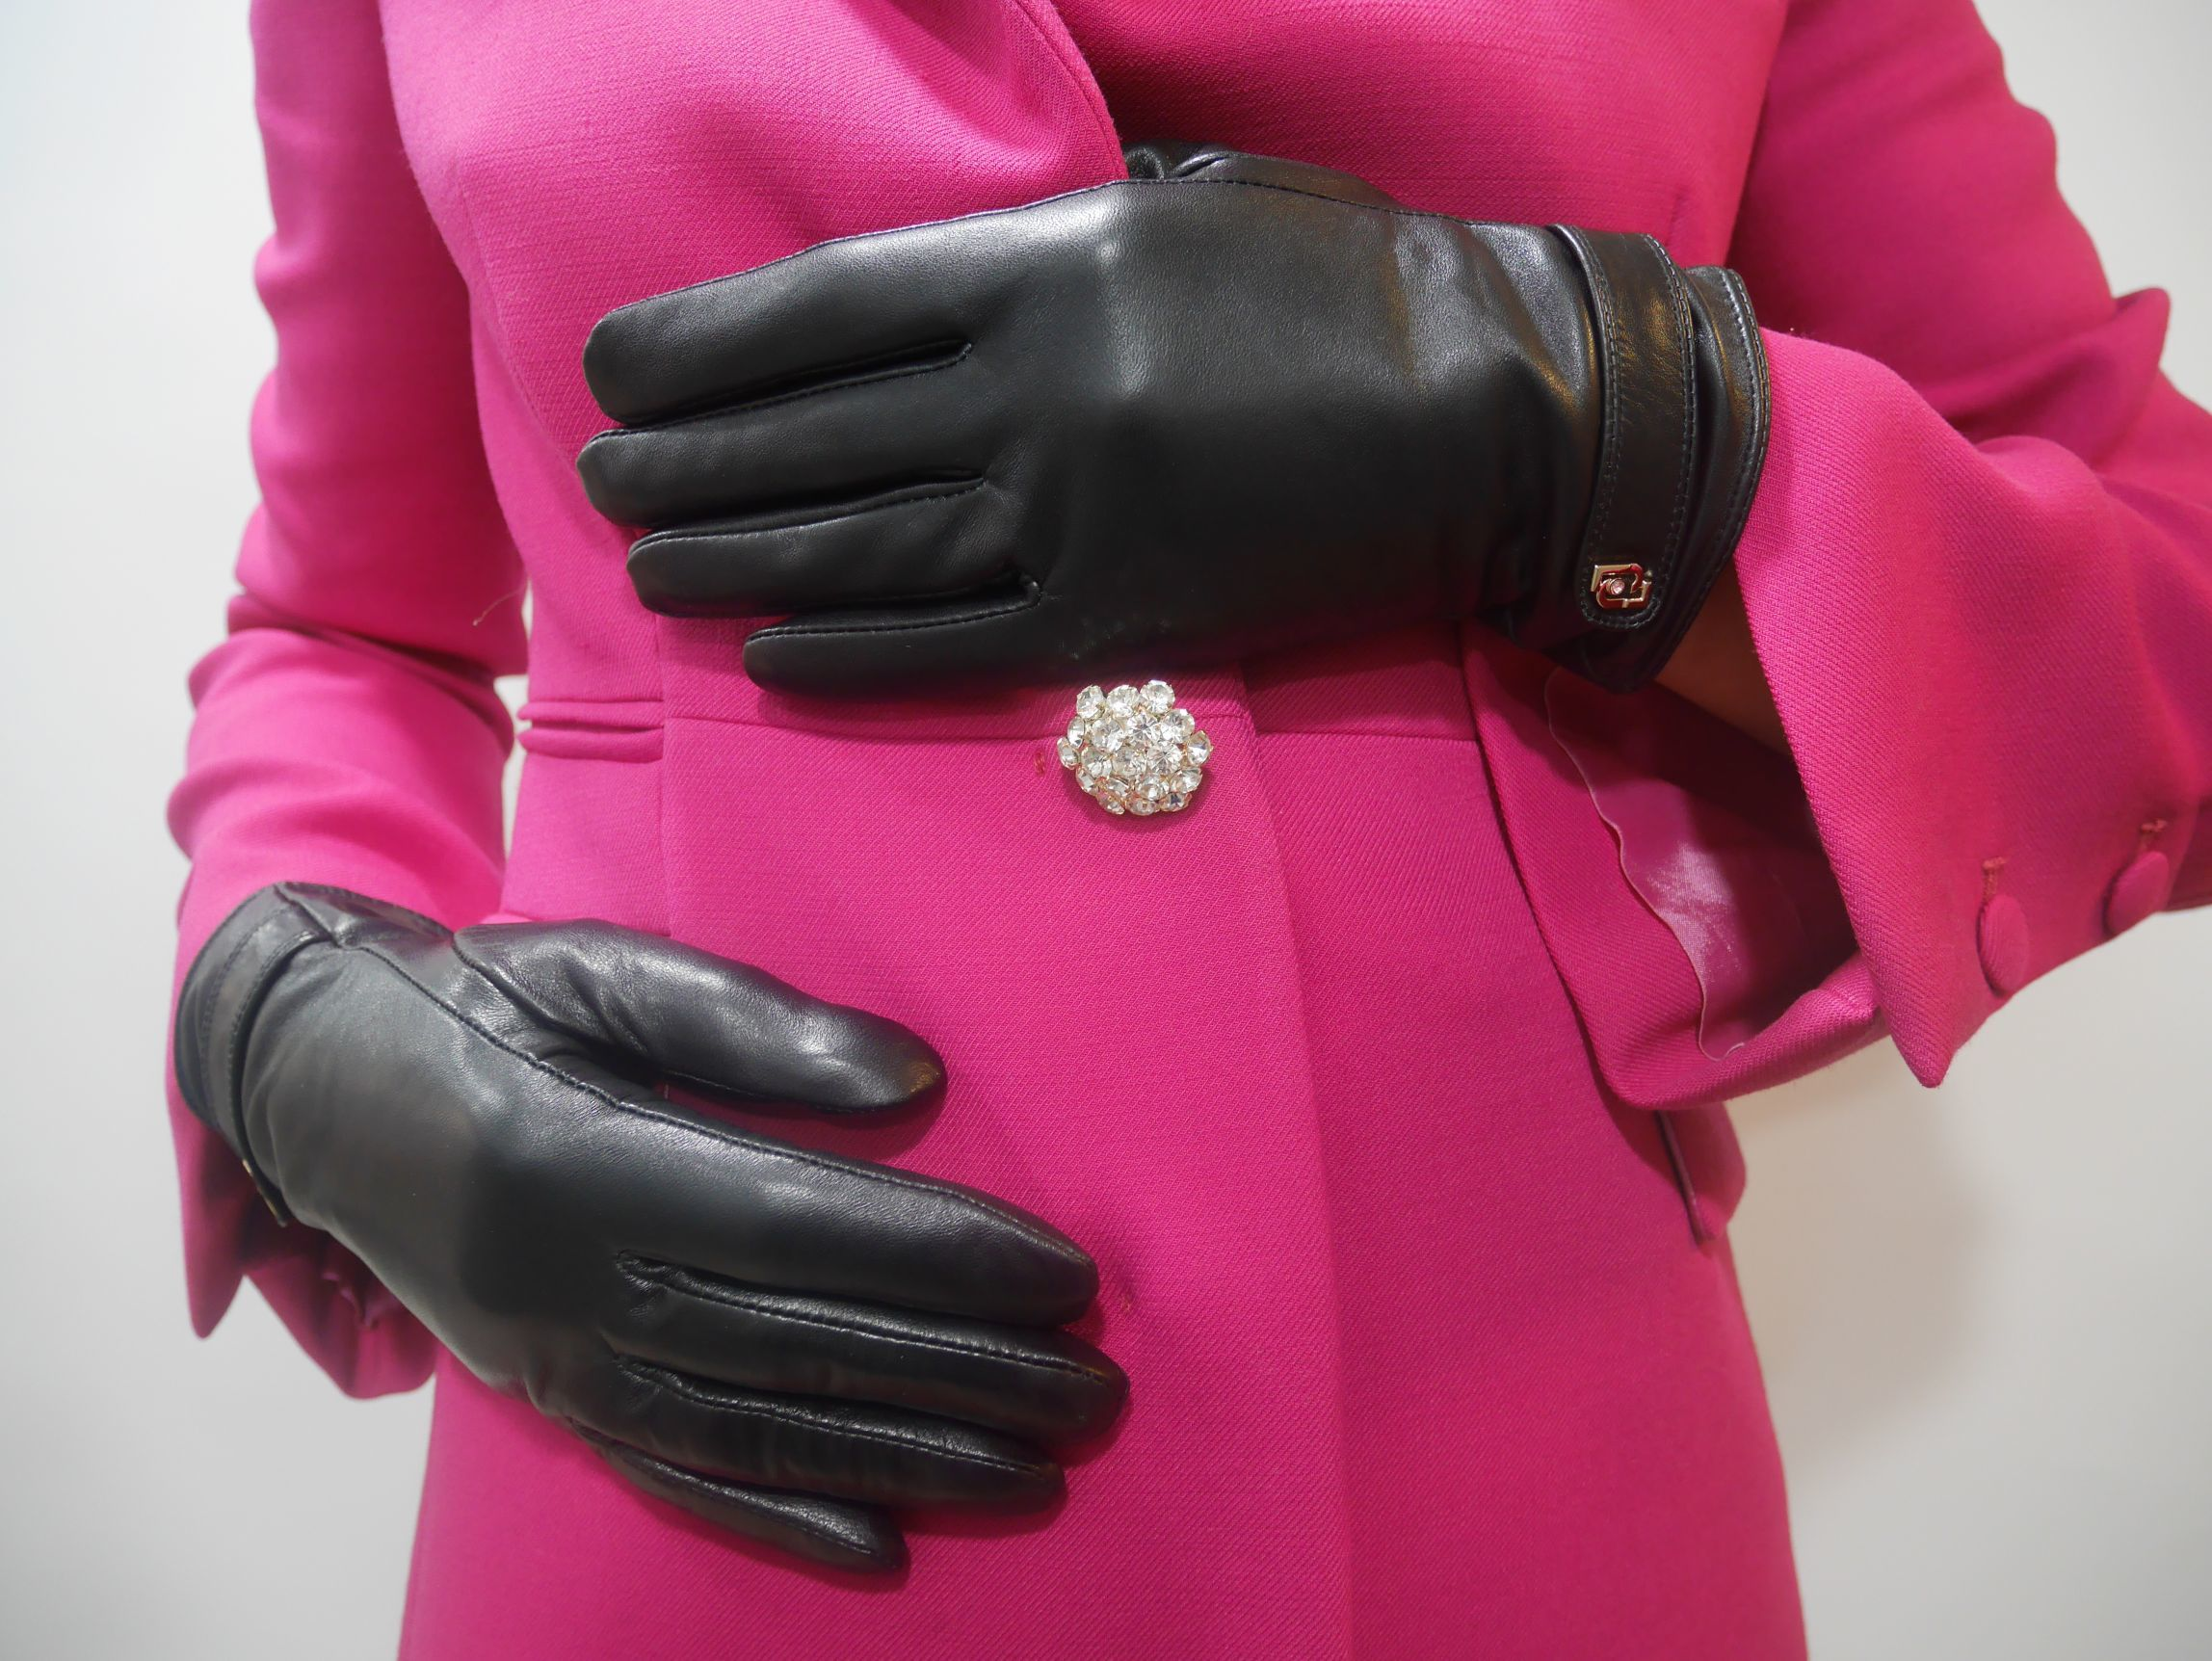 369096 P0016 22222 LEATHER GLOVES 1